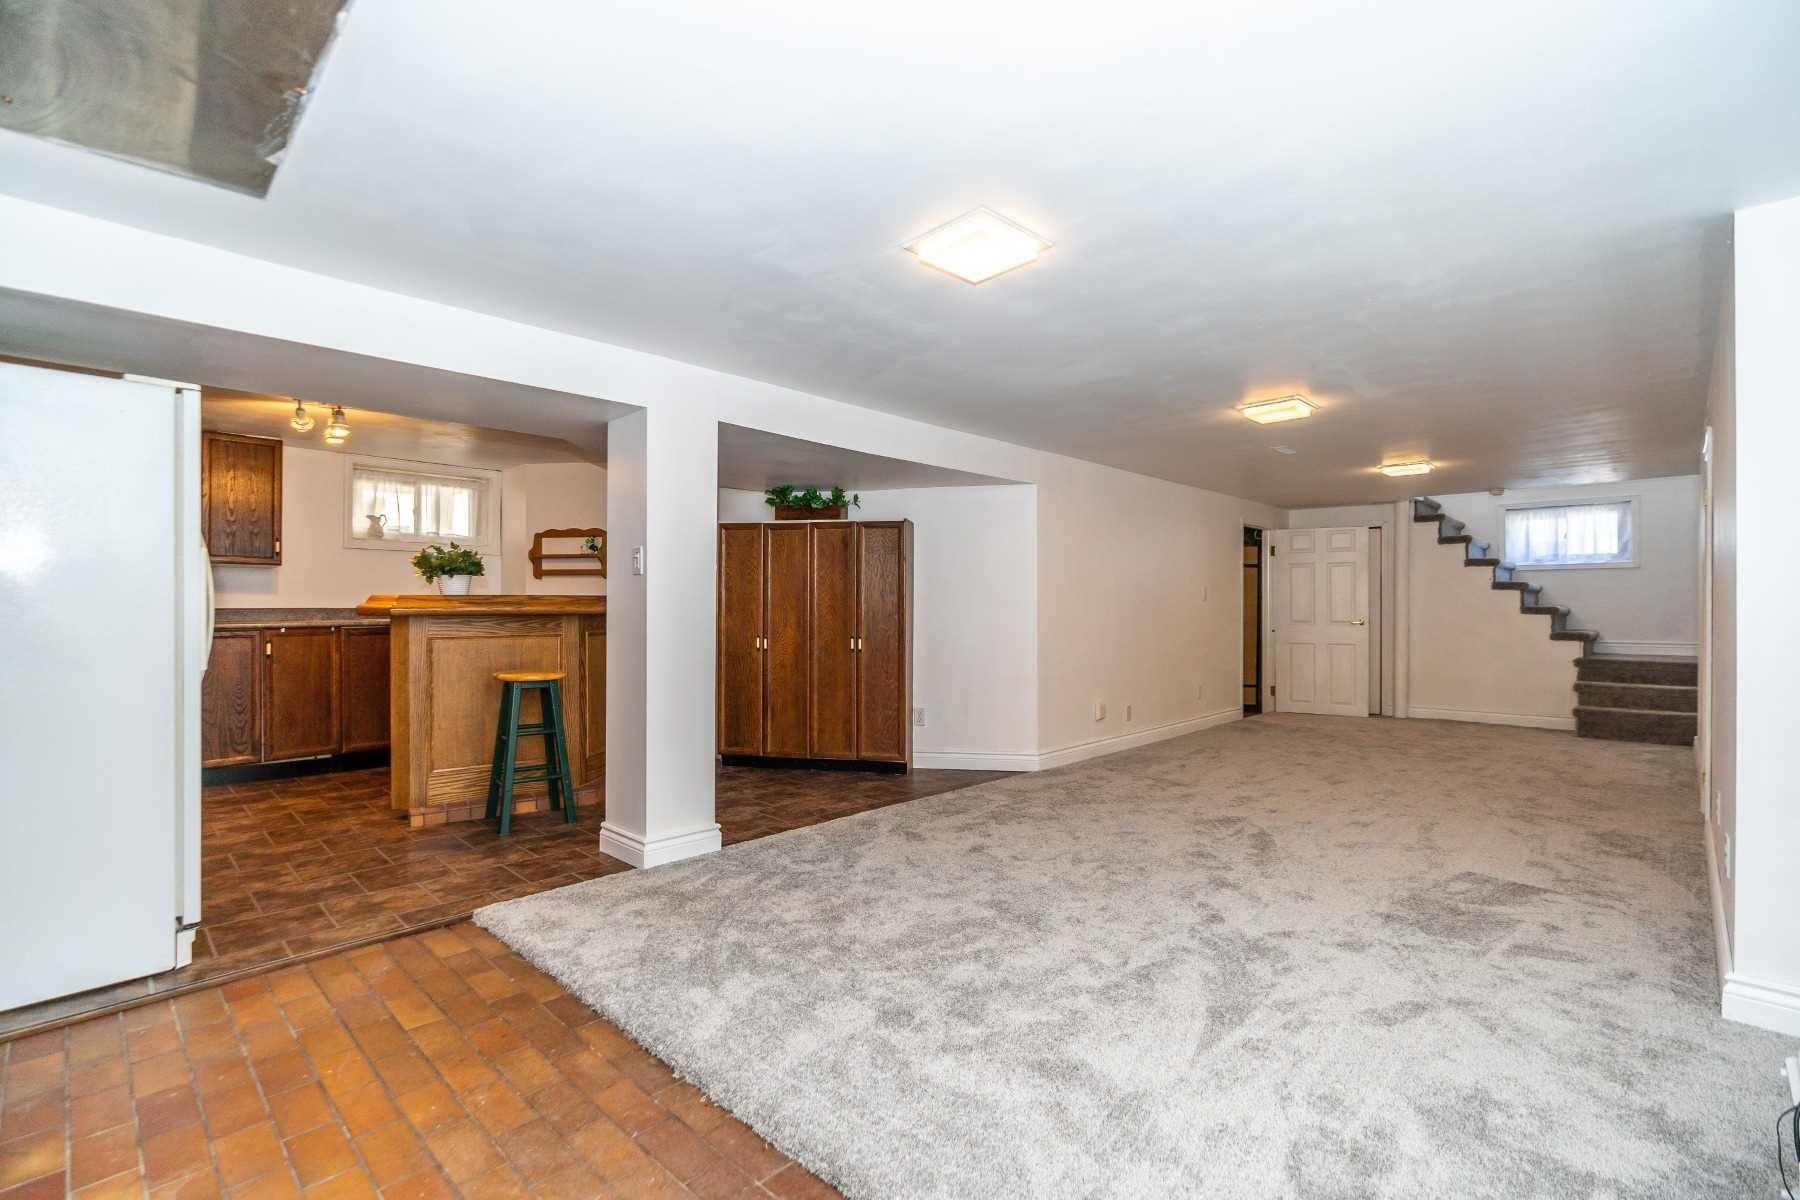 Photo 16: Photos: 40 Eastlawn Street in Oshawa: Donevan House (Bungalow) for sale : MLS®# E4769026